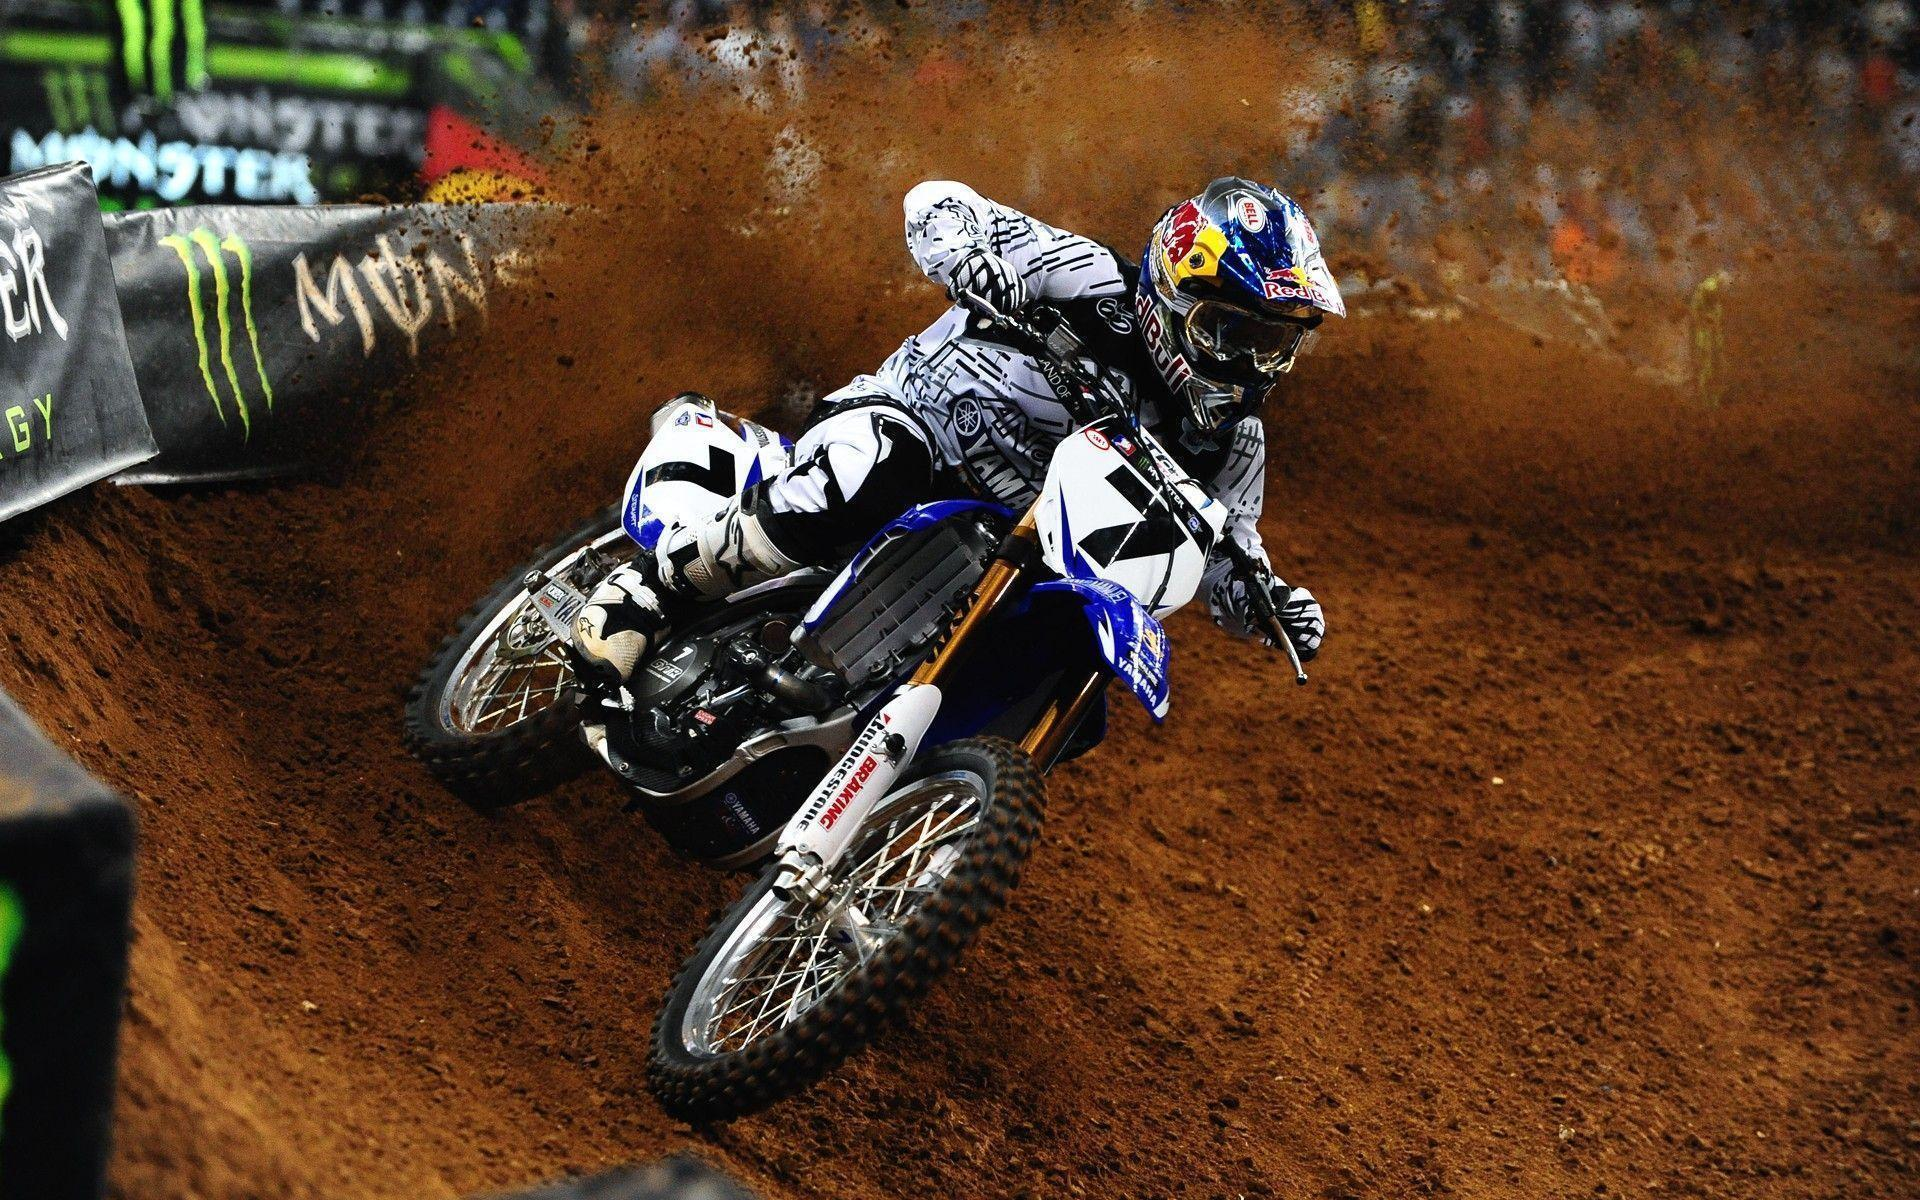 Motocross Wallpapers - Wallpaper Cave Race 2 Wallpapers Hd